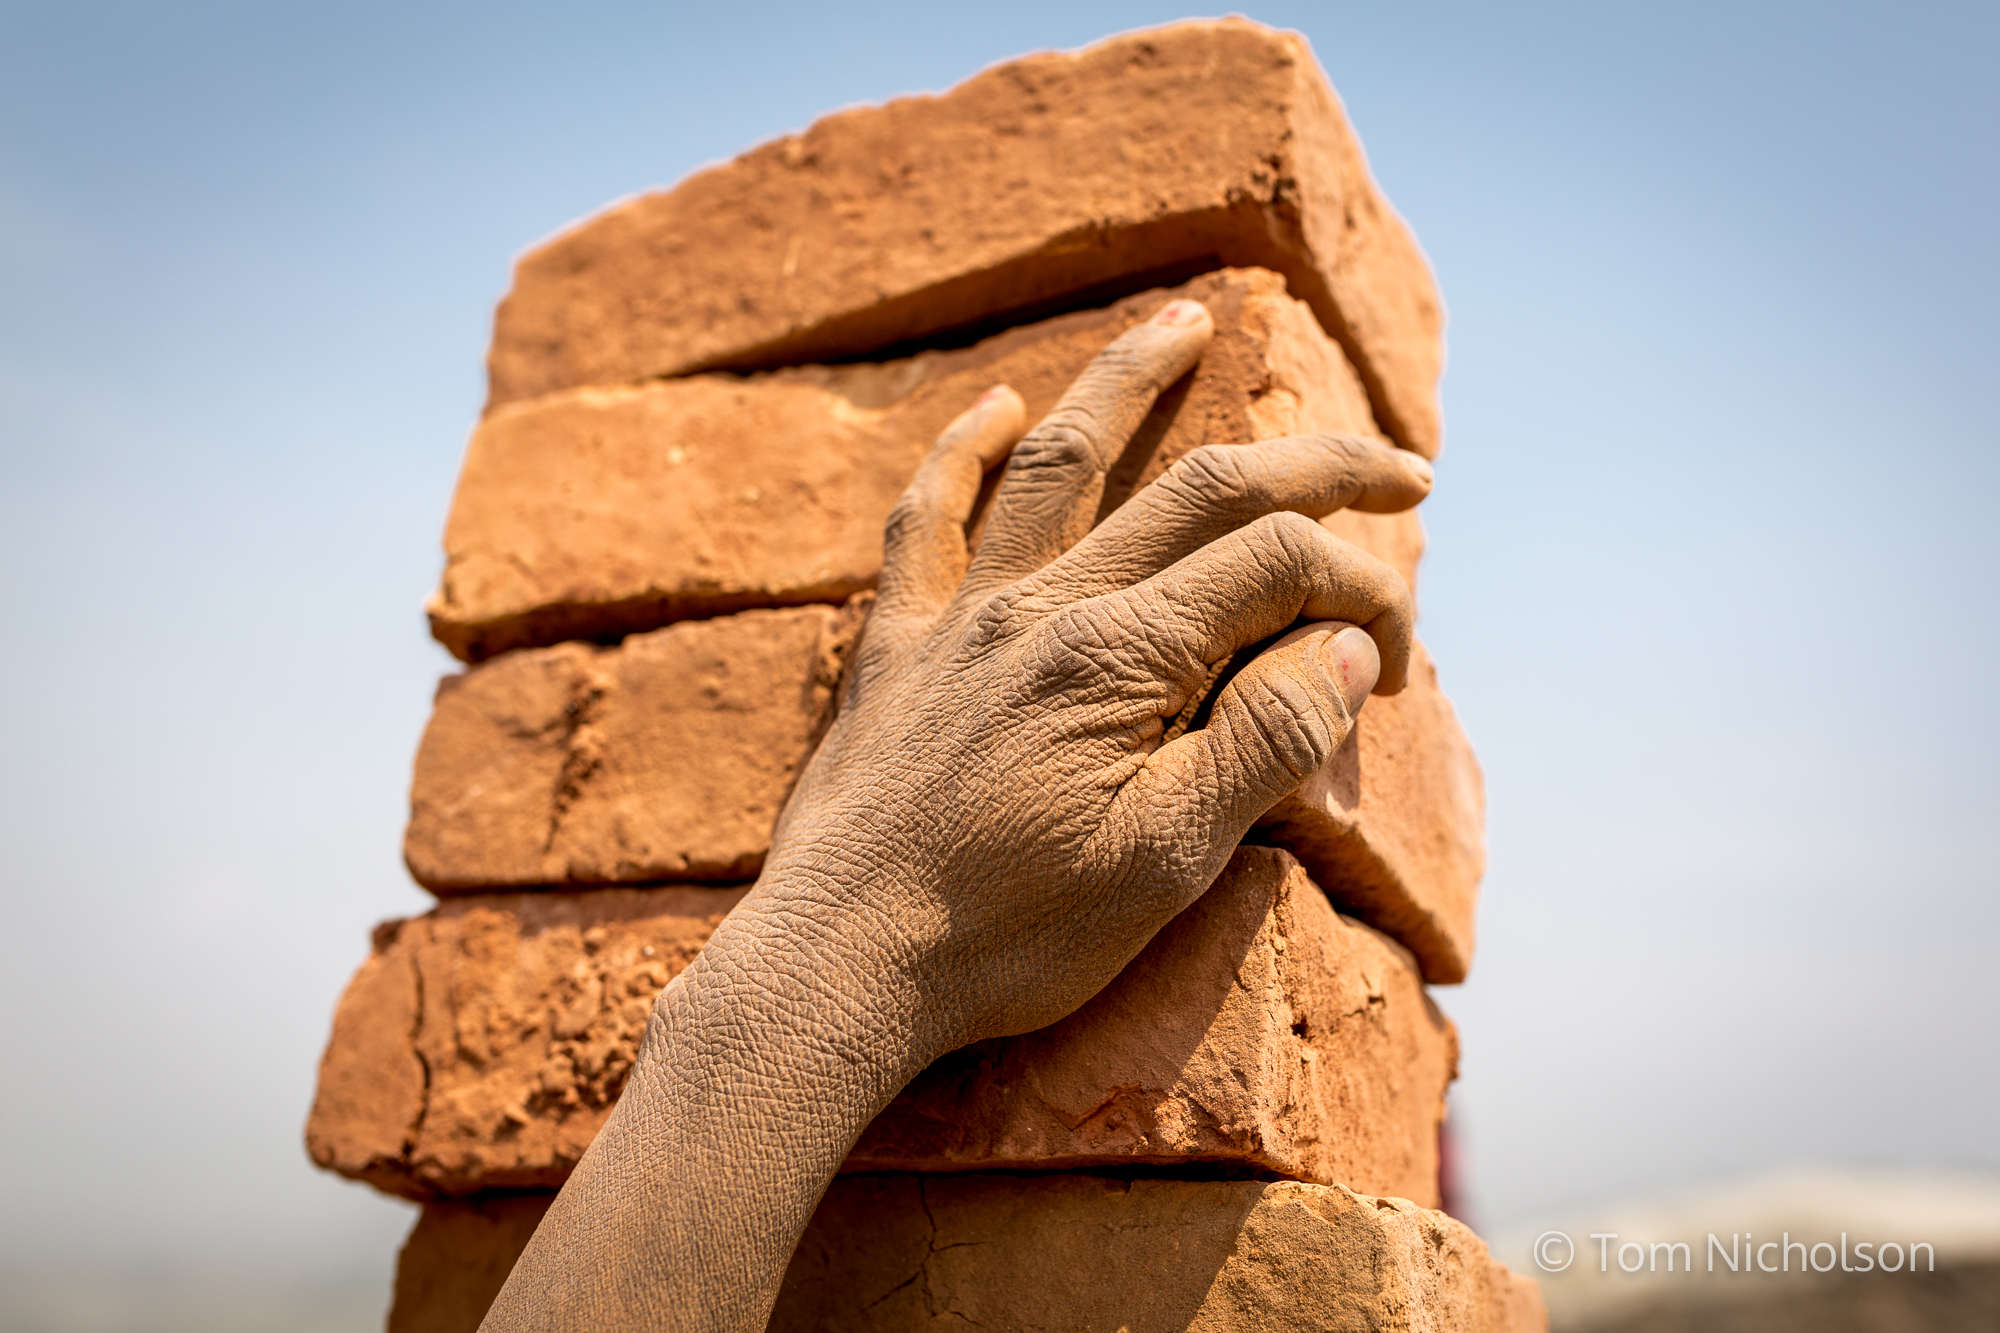 An Indian migrant worker carries bricks in the UK brickworks factory in Bungamati, Kathmandu, Nepal on 15 March 2016. Around 400 labourers, including children, work in very dusty and hot conditions.